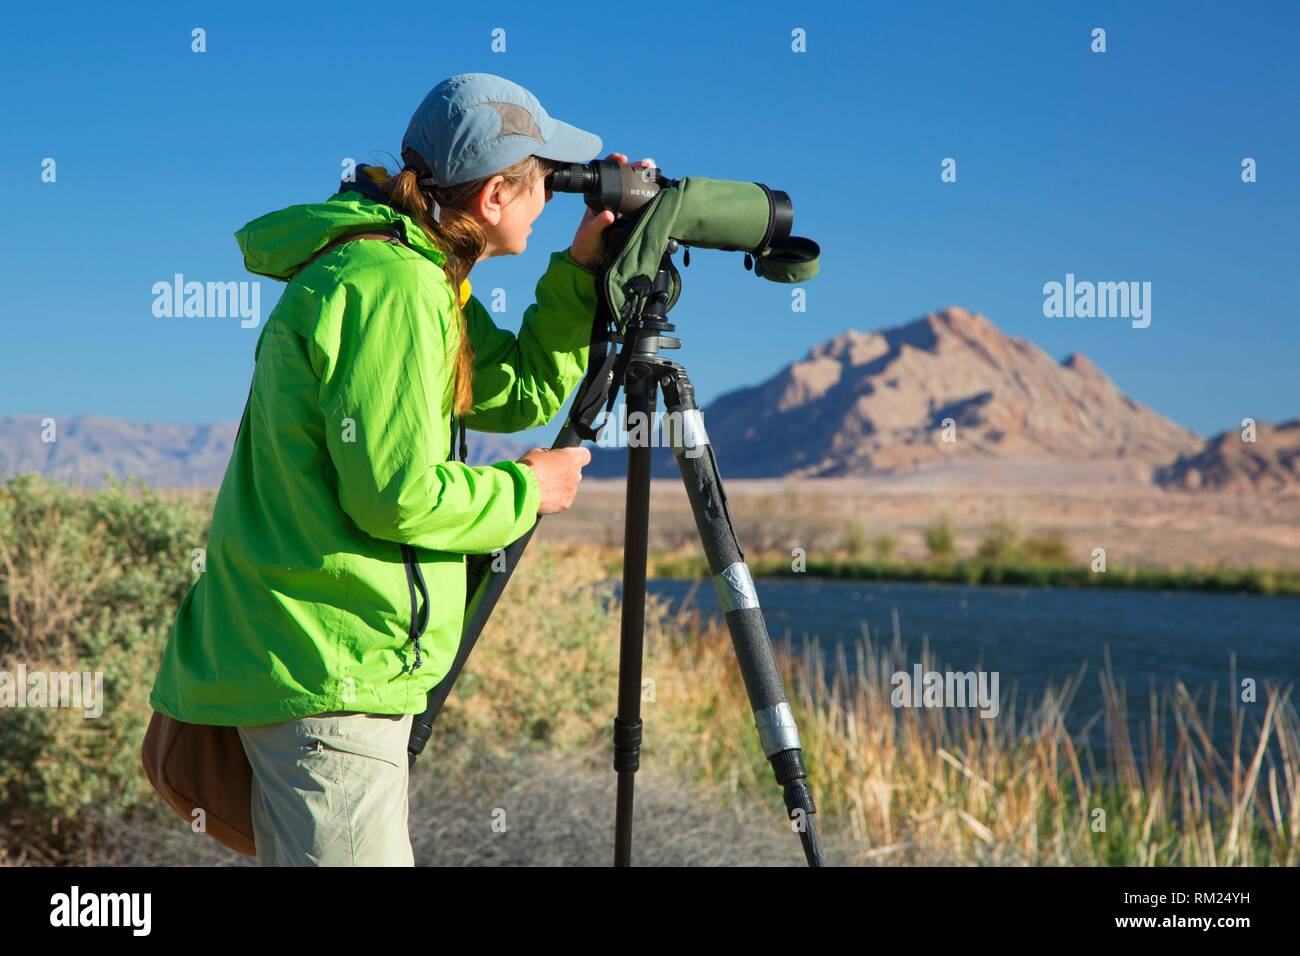 Birder with spotting scope, City of Henderson Bird Viewing Preserve, Nevada. - Stock Image